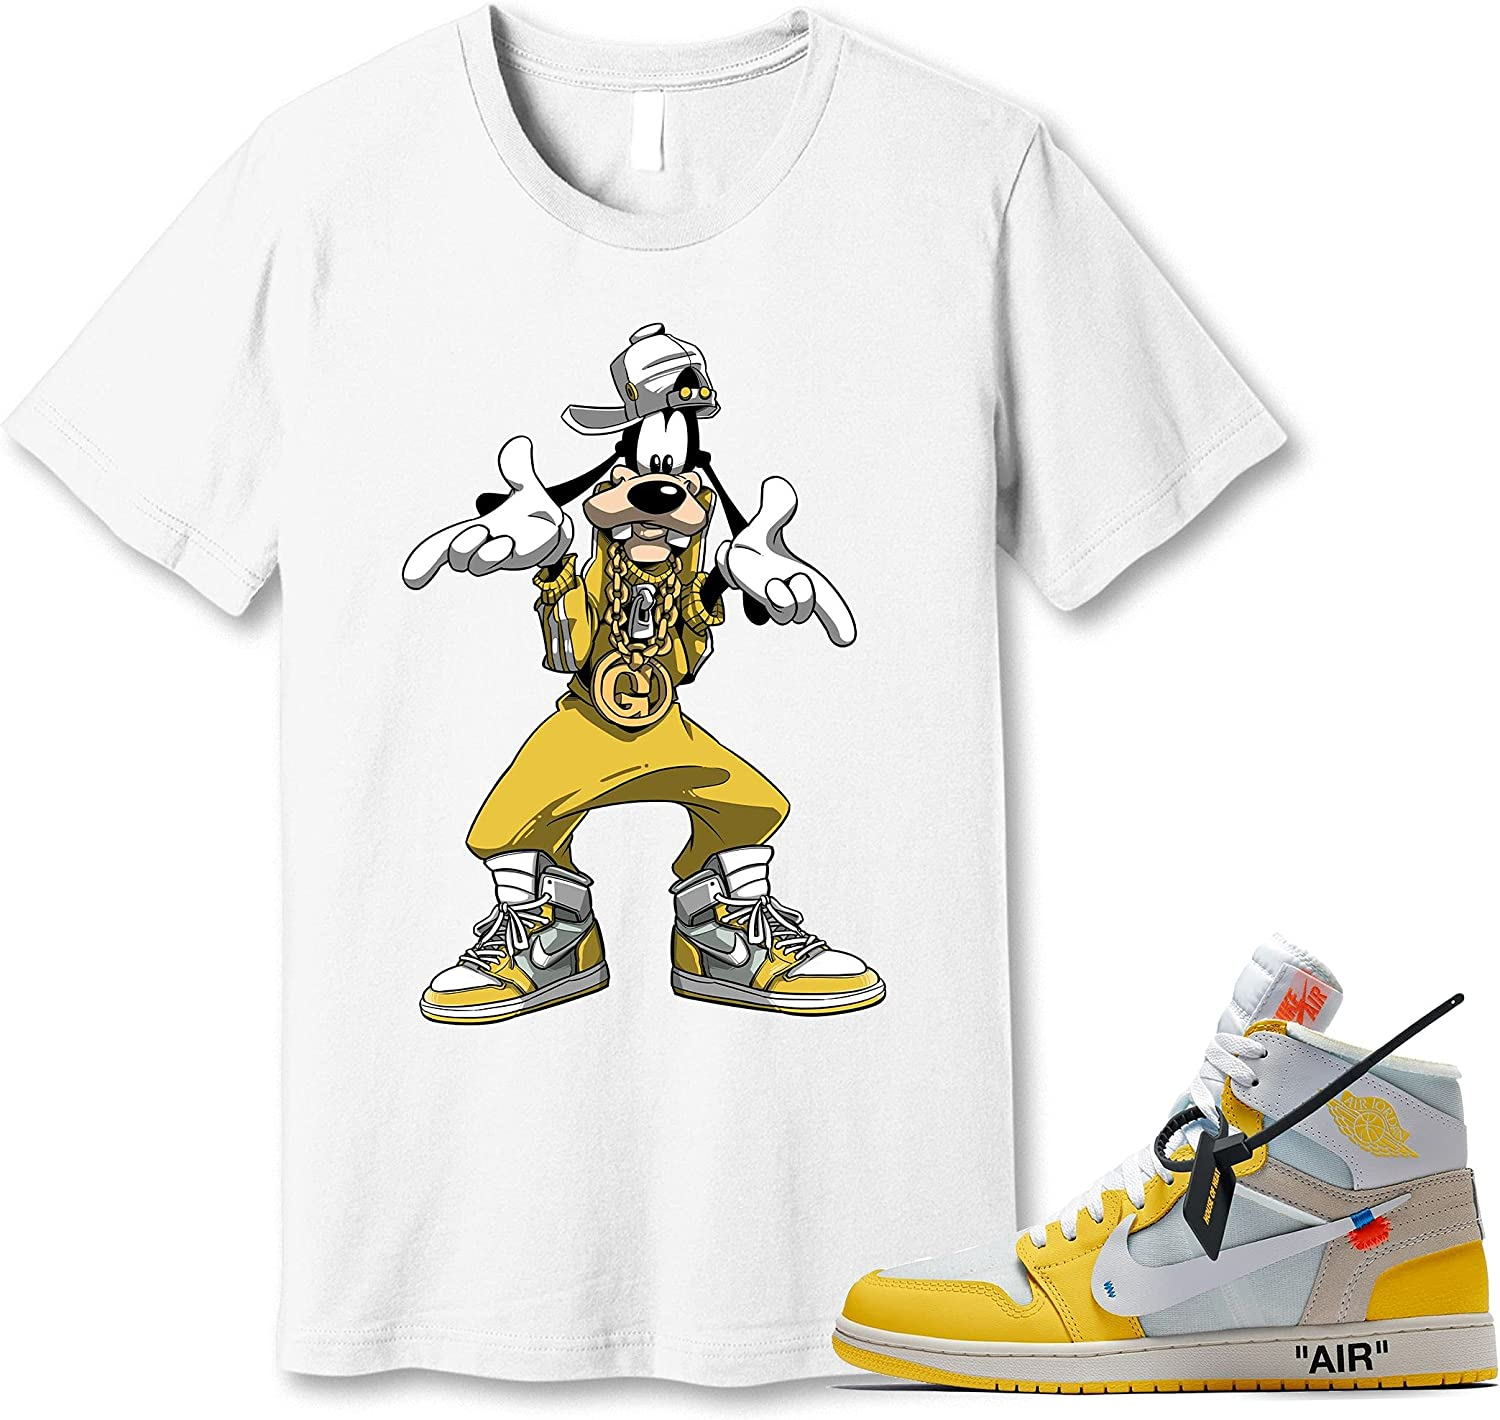 #Goofy White T-Shirt Free Shipping New to Match Jordan 1 Sneaker Snk Free Shipping New Canary Yellow